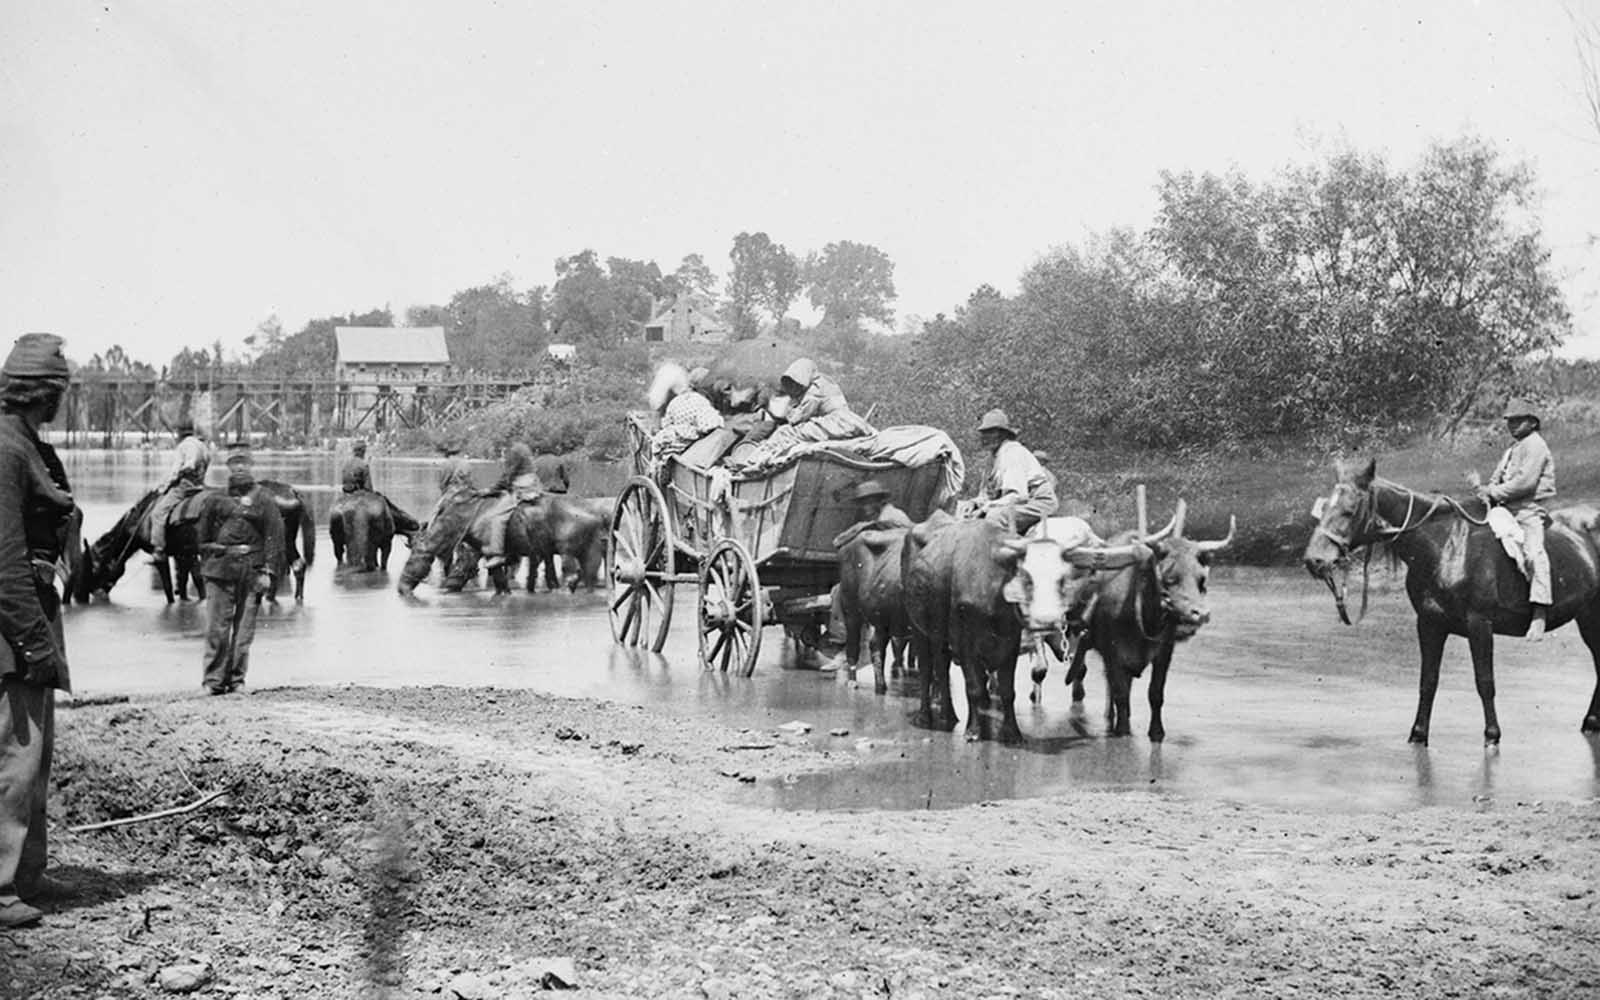 Fugitive African Americans are fording the Rappahannock River in Virginia, August 1862, during the Second Battle of Bull Run.